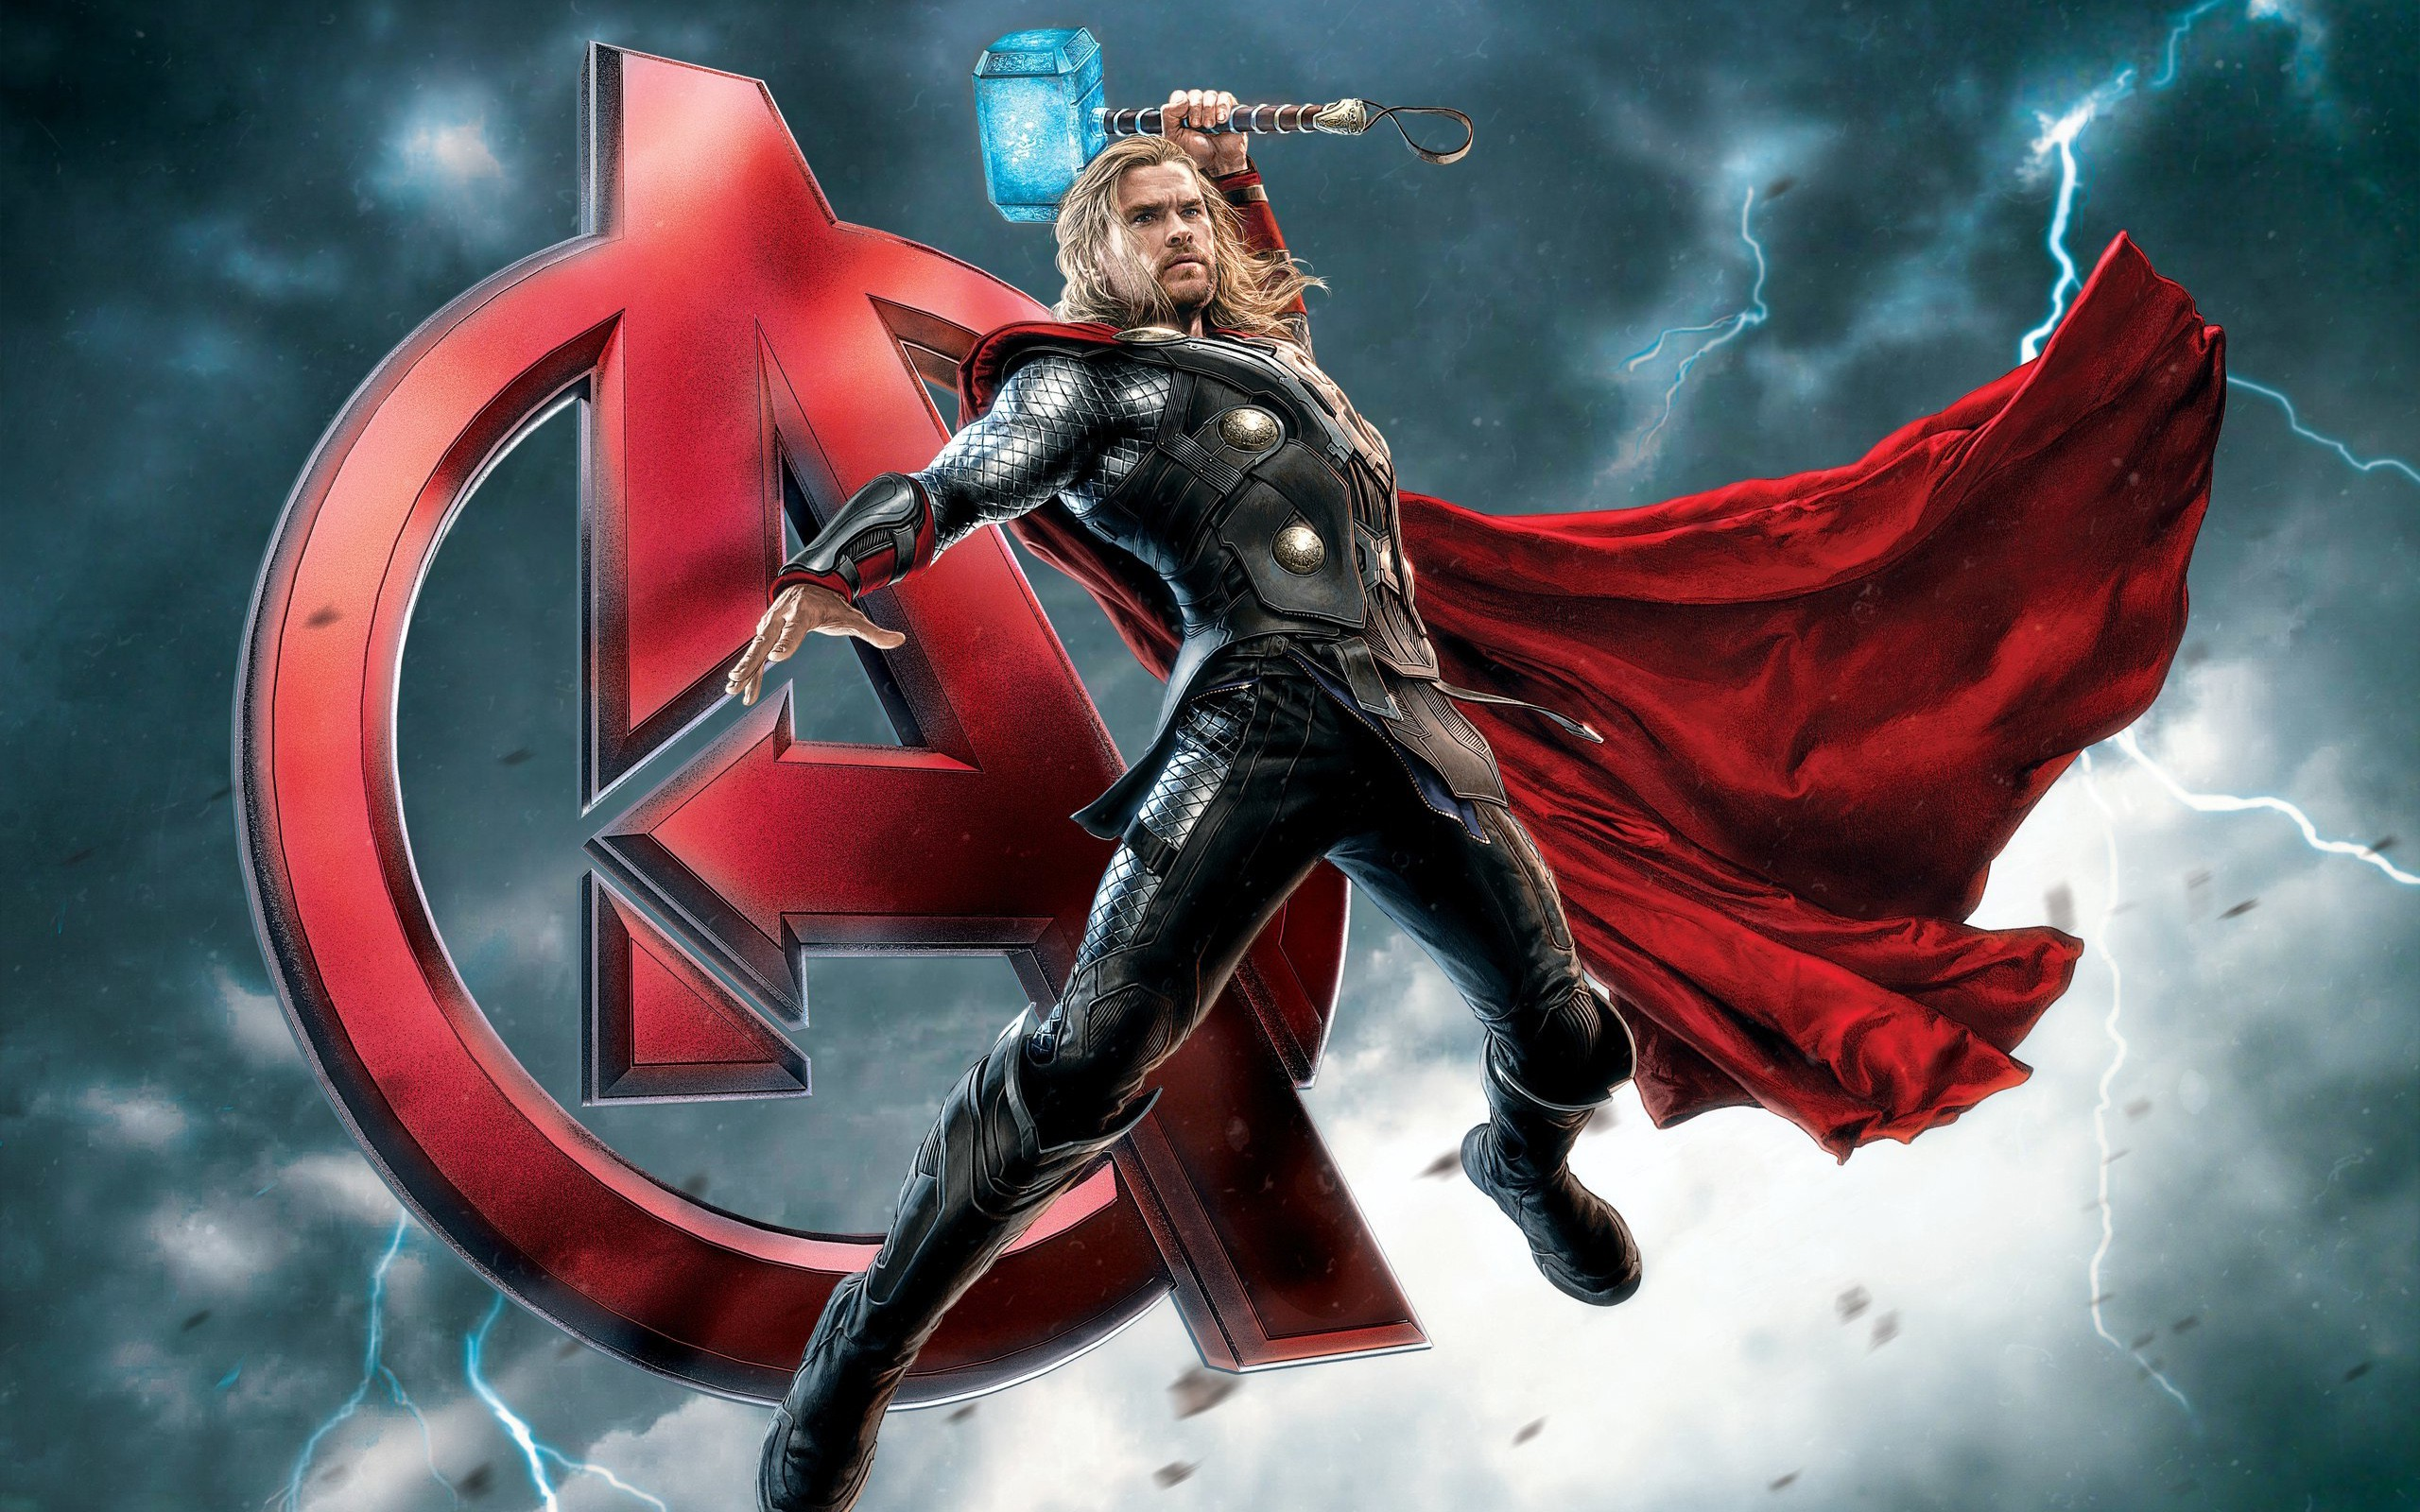 Avenger Wallpaper For Android: Thor Avengers, HD Movies, 4k Wallpapers, Images